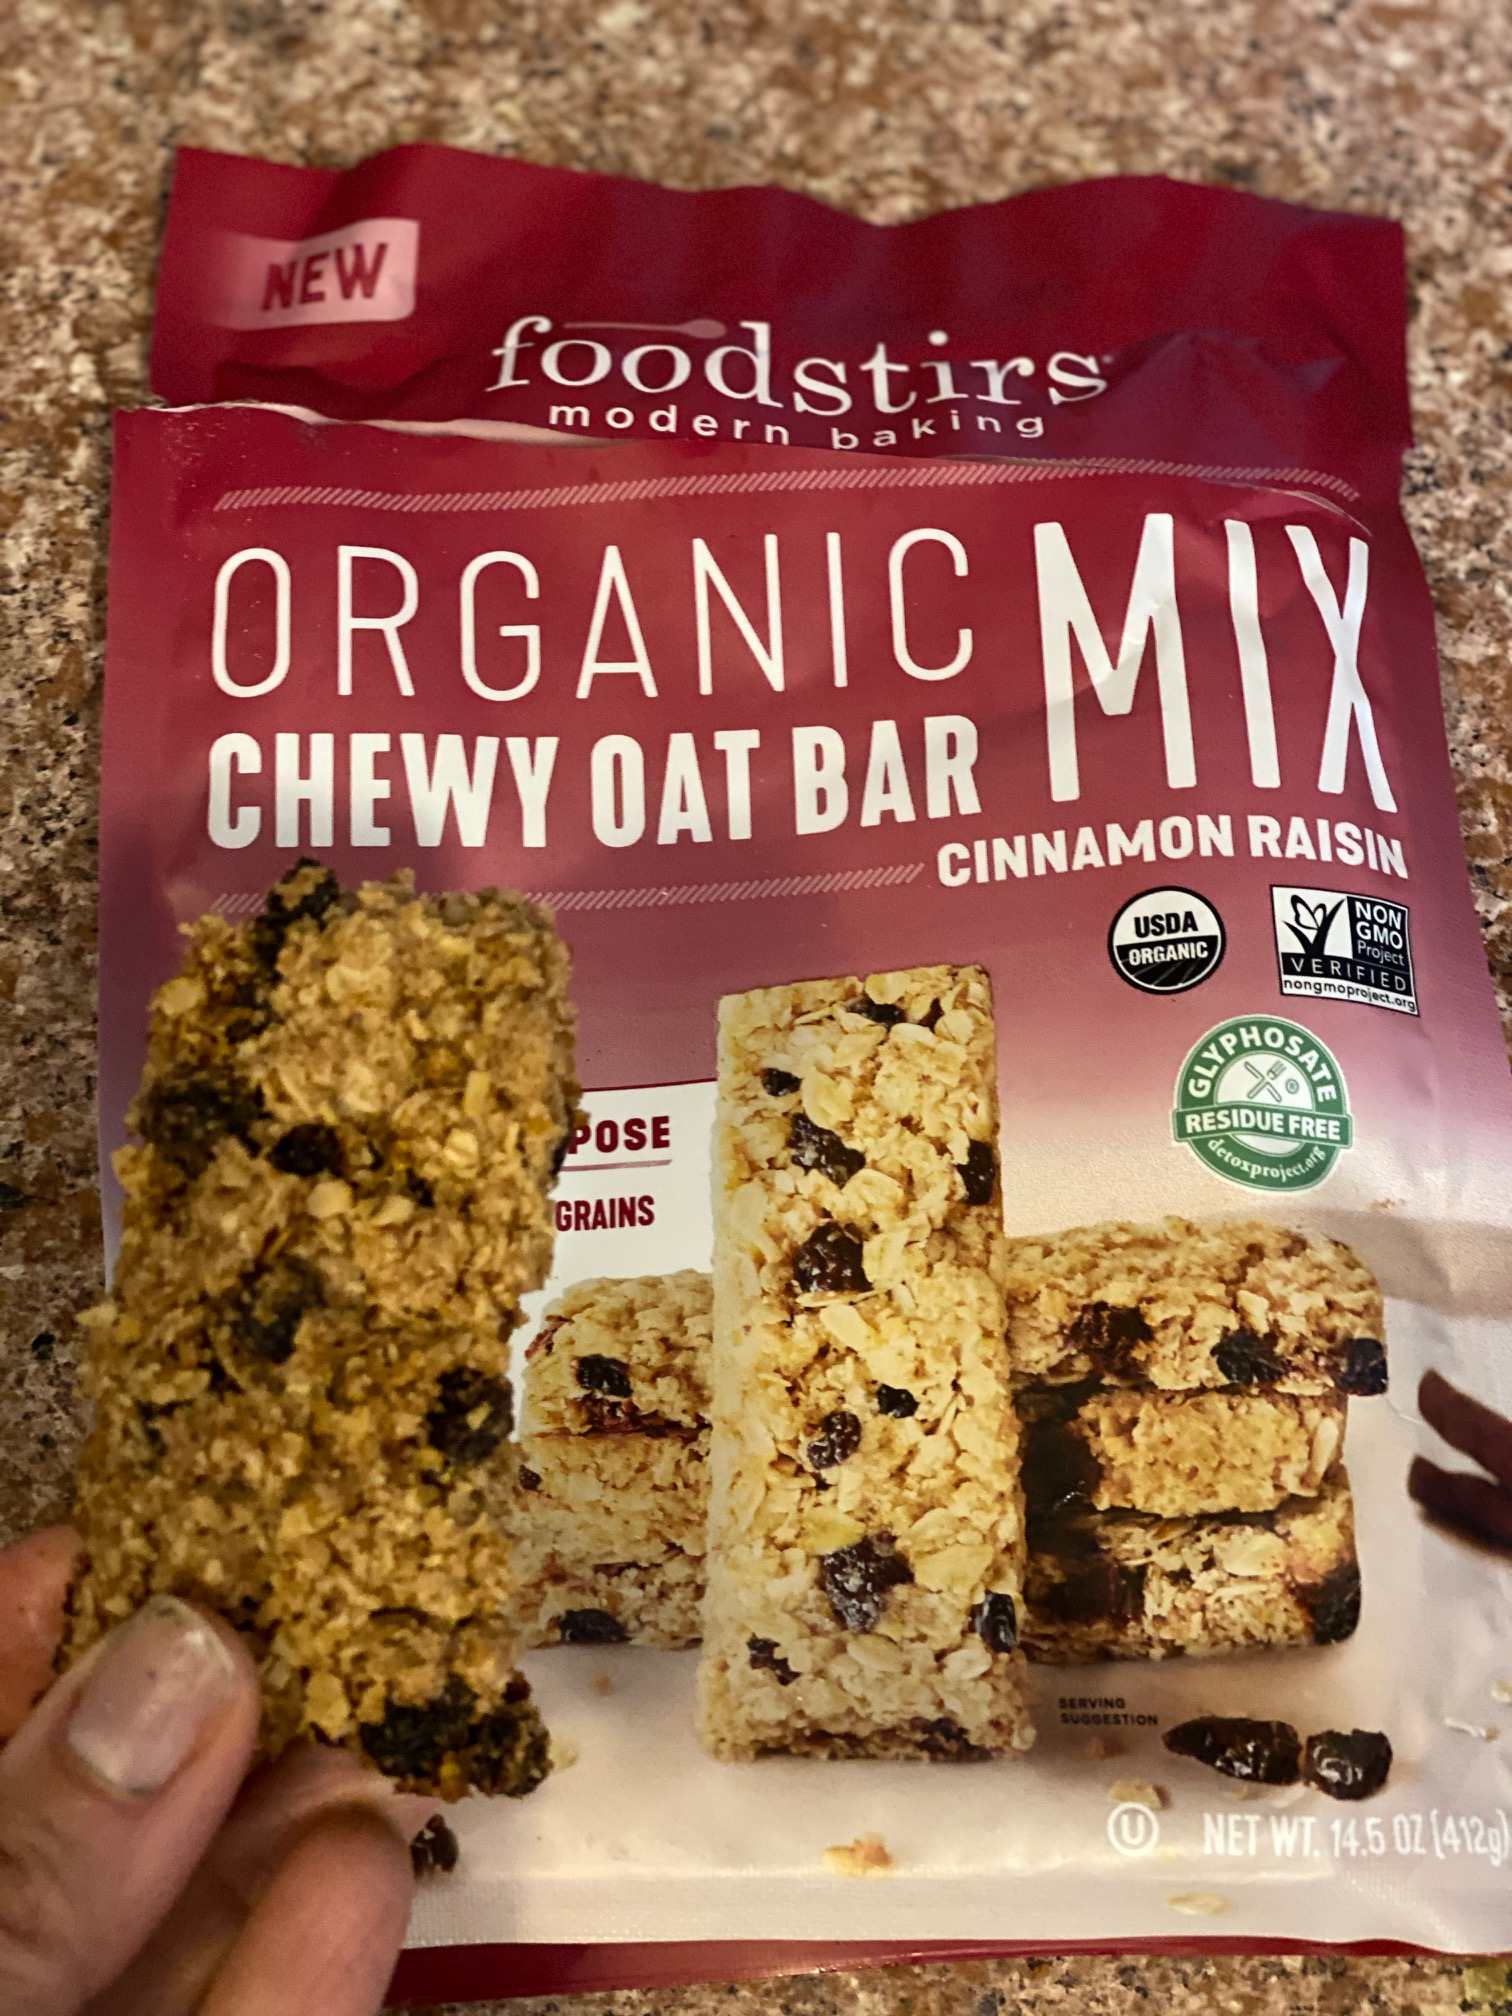 Organic Chewy Oat Bar Mix foodstirs